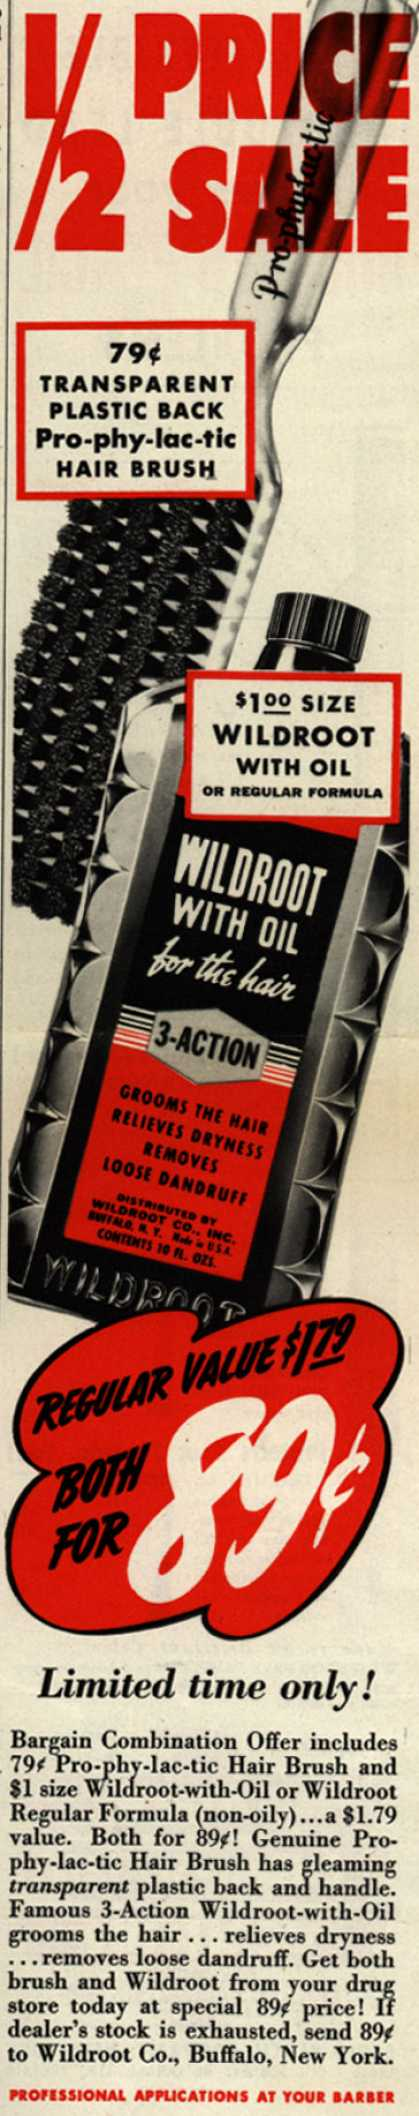 Wildroot Company's Wildroot Bargain Combination Offer – 1/2 Price Sale (1941)